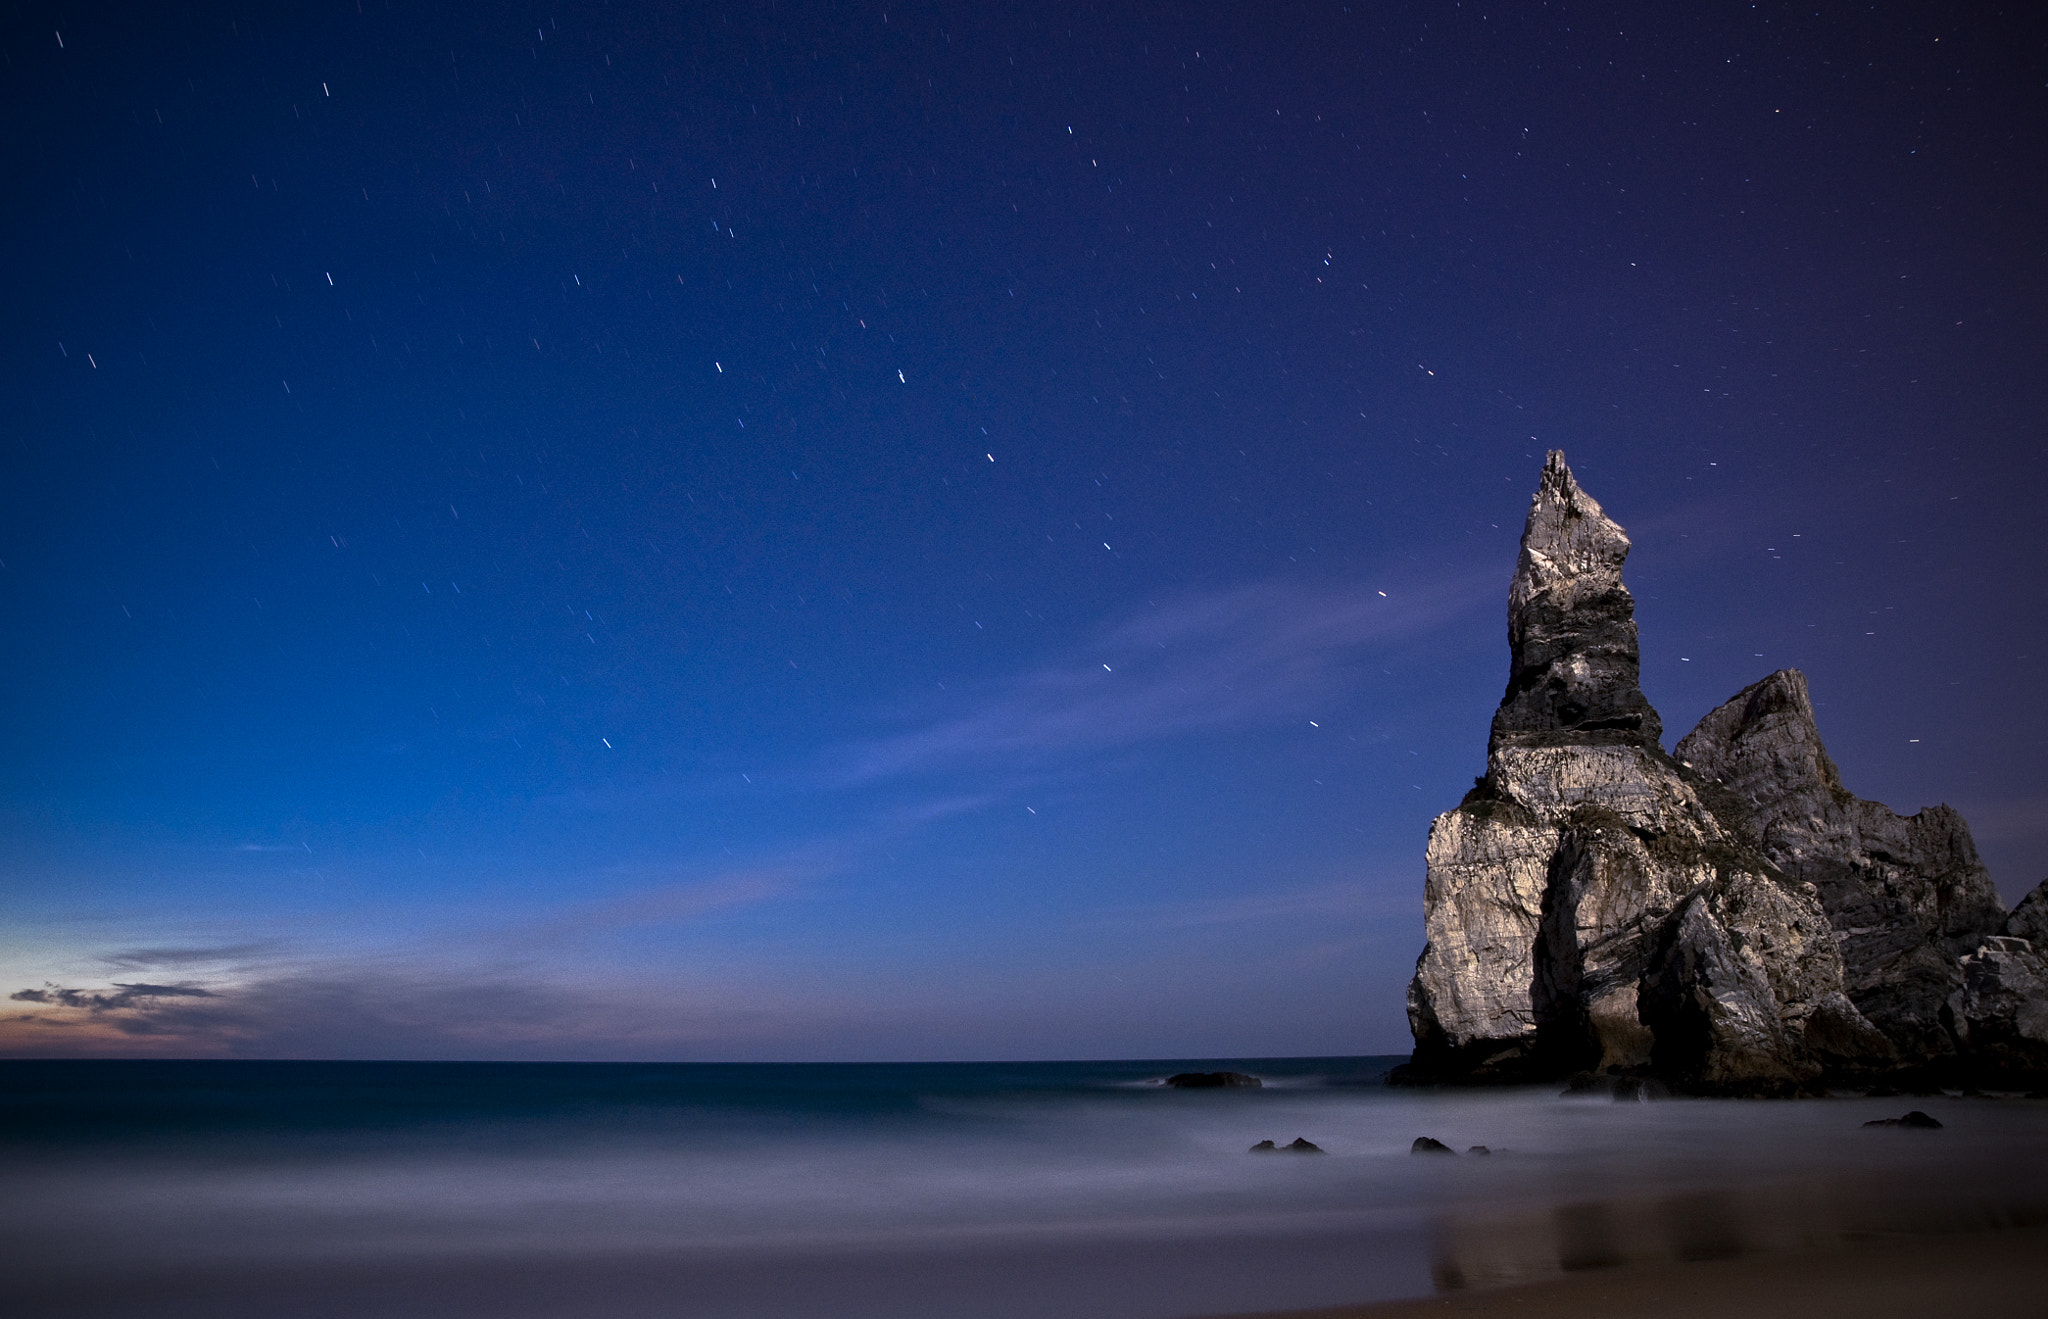 Photograph Moonlight on the beach of the Ursa by joaocarlo   on 500px